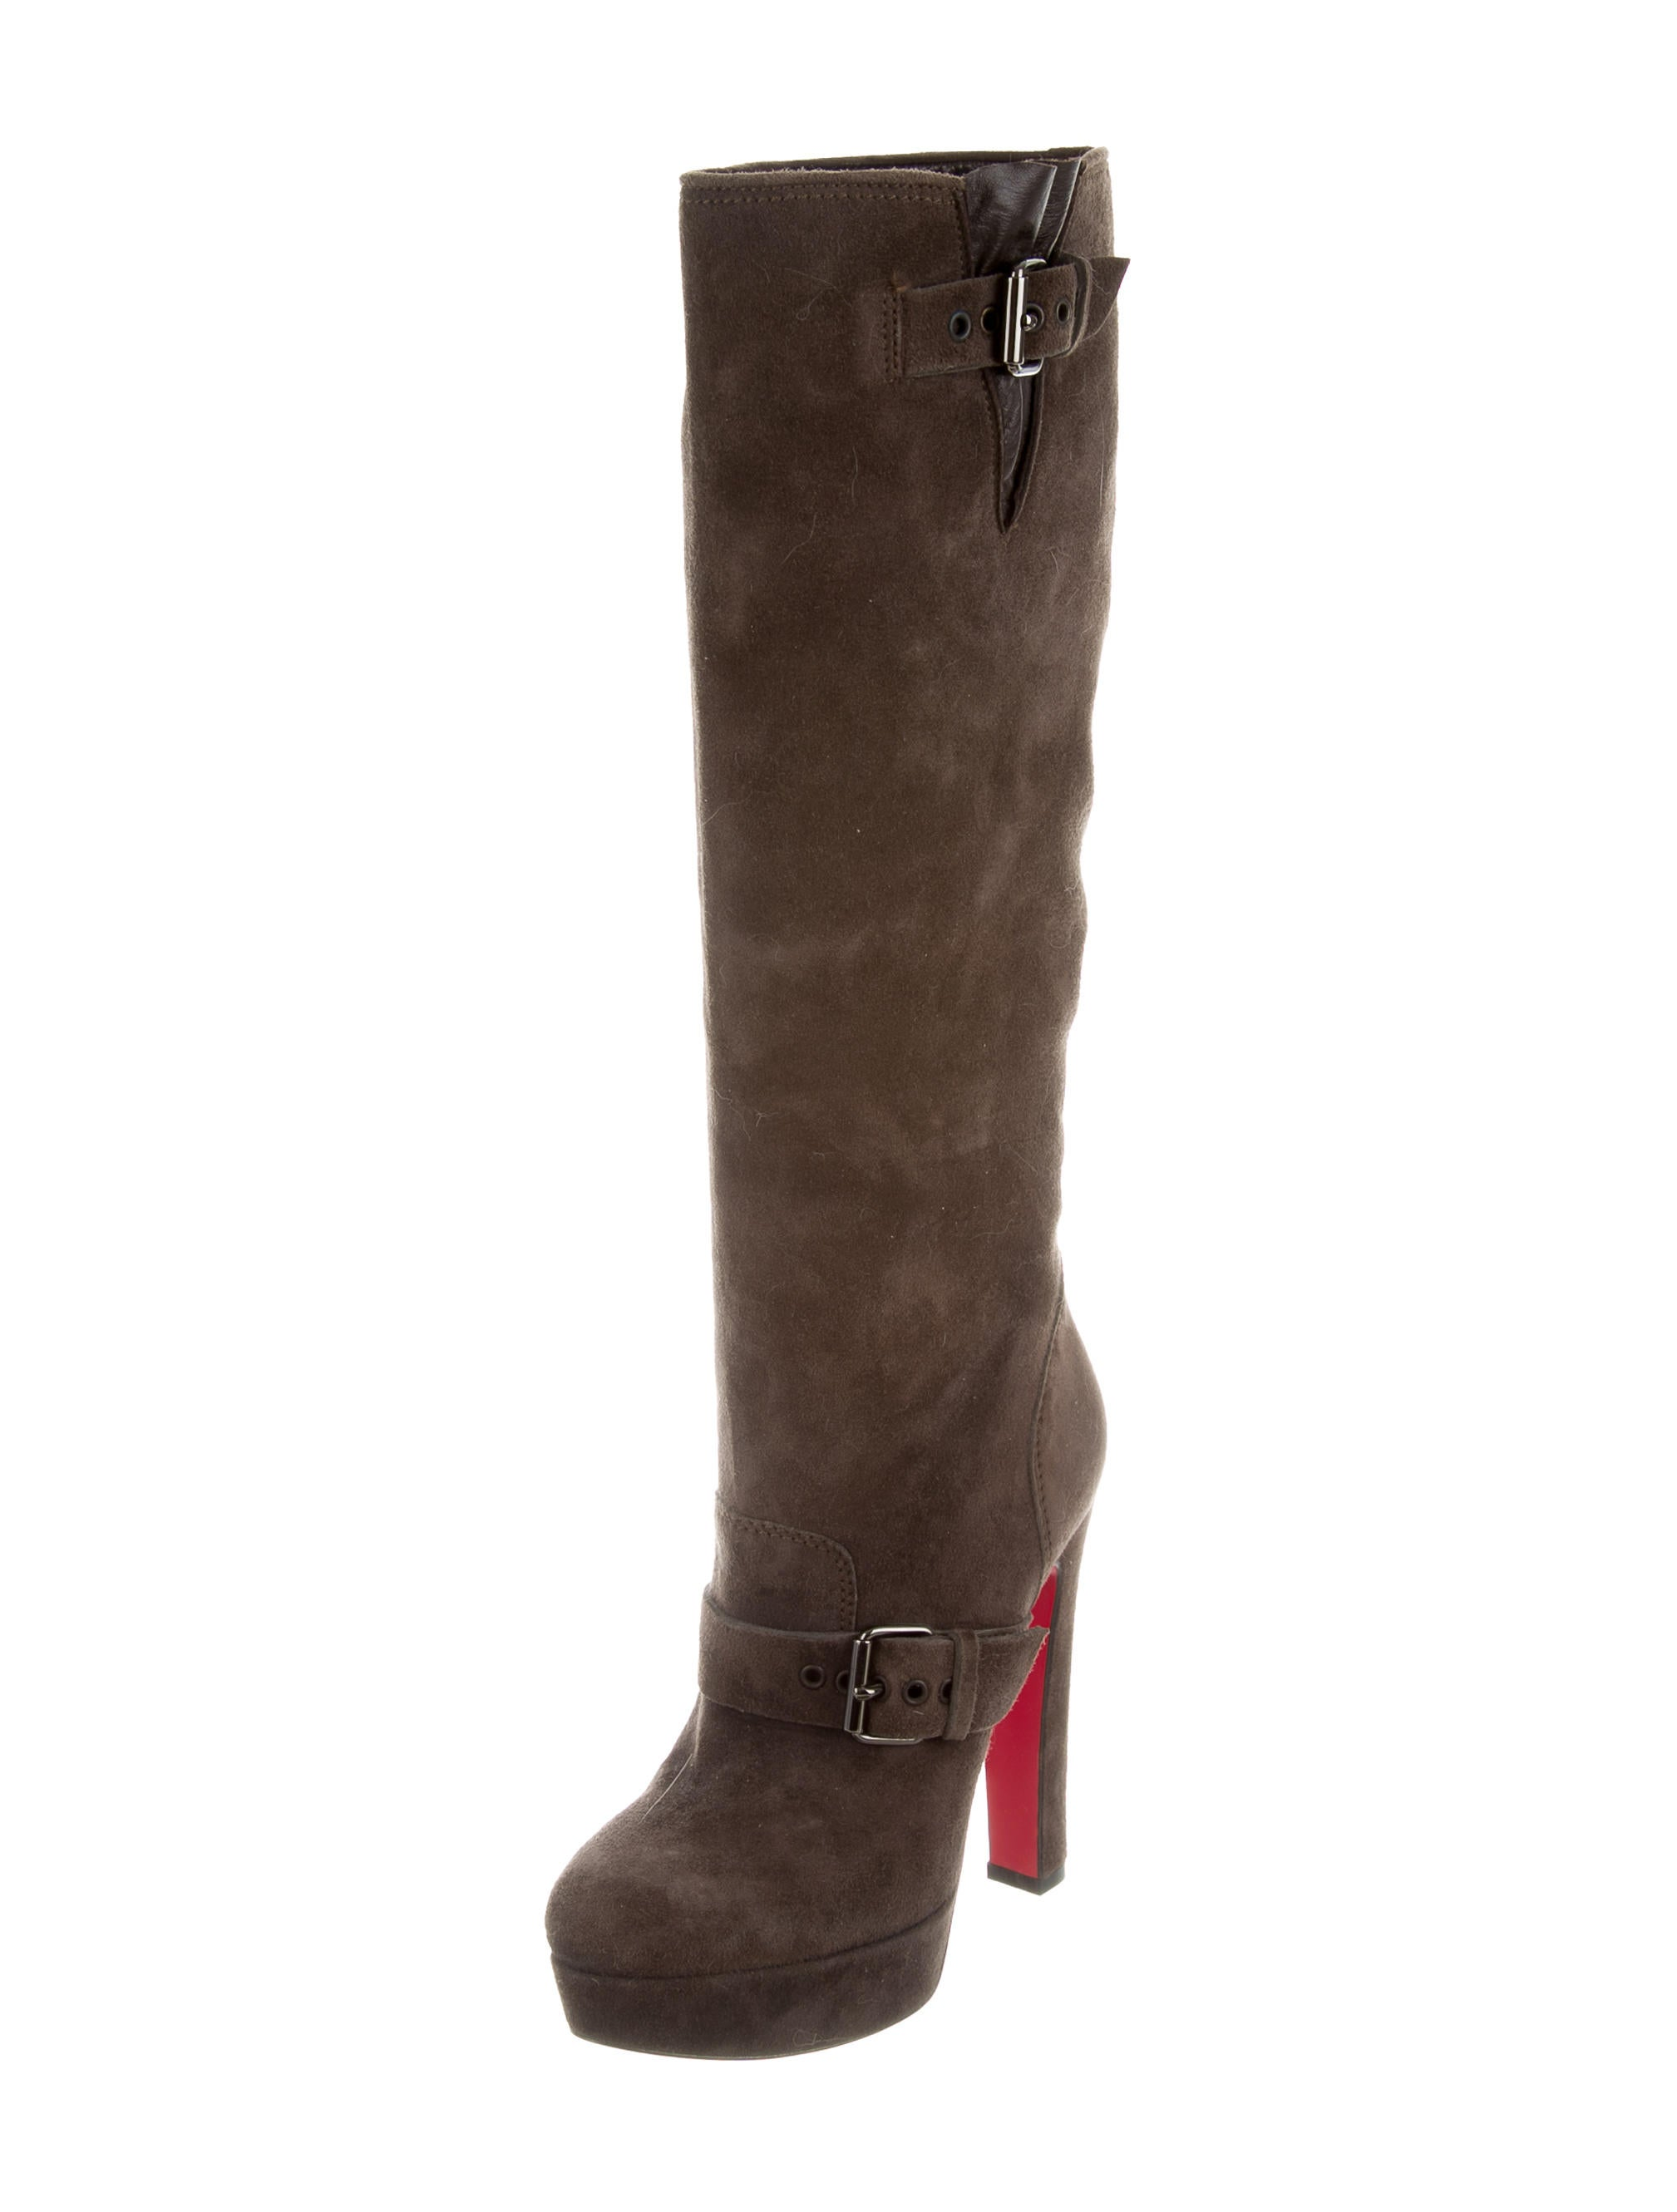 christian louboutin suede platform knee high boots shoes